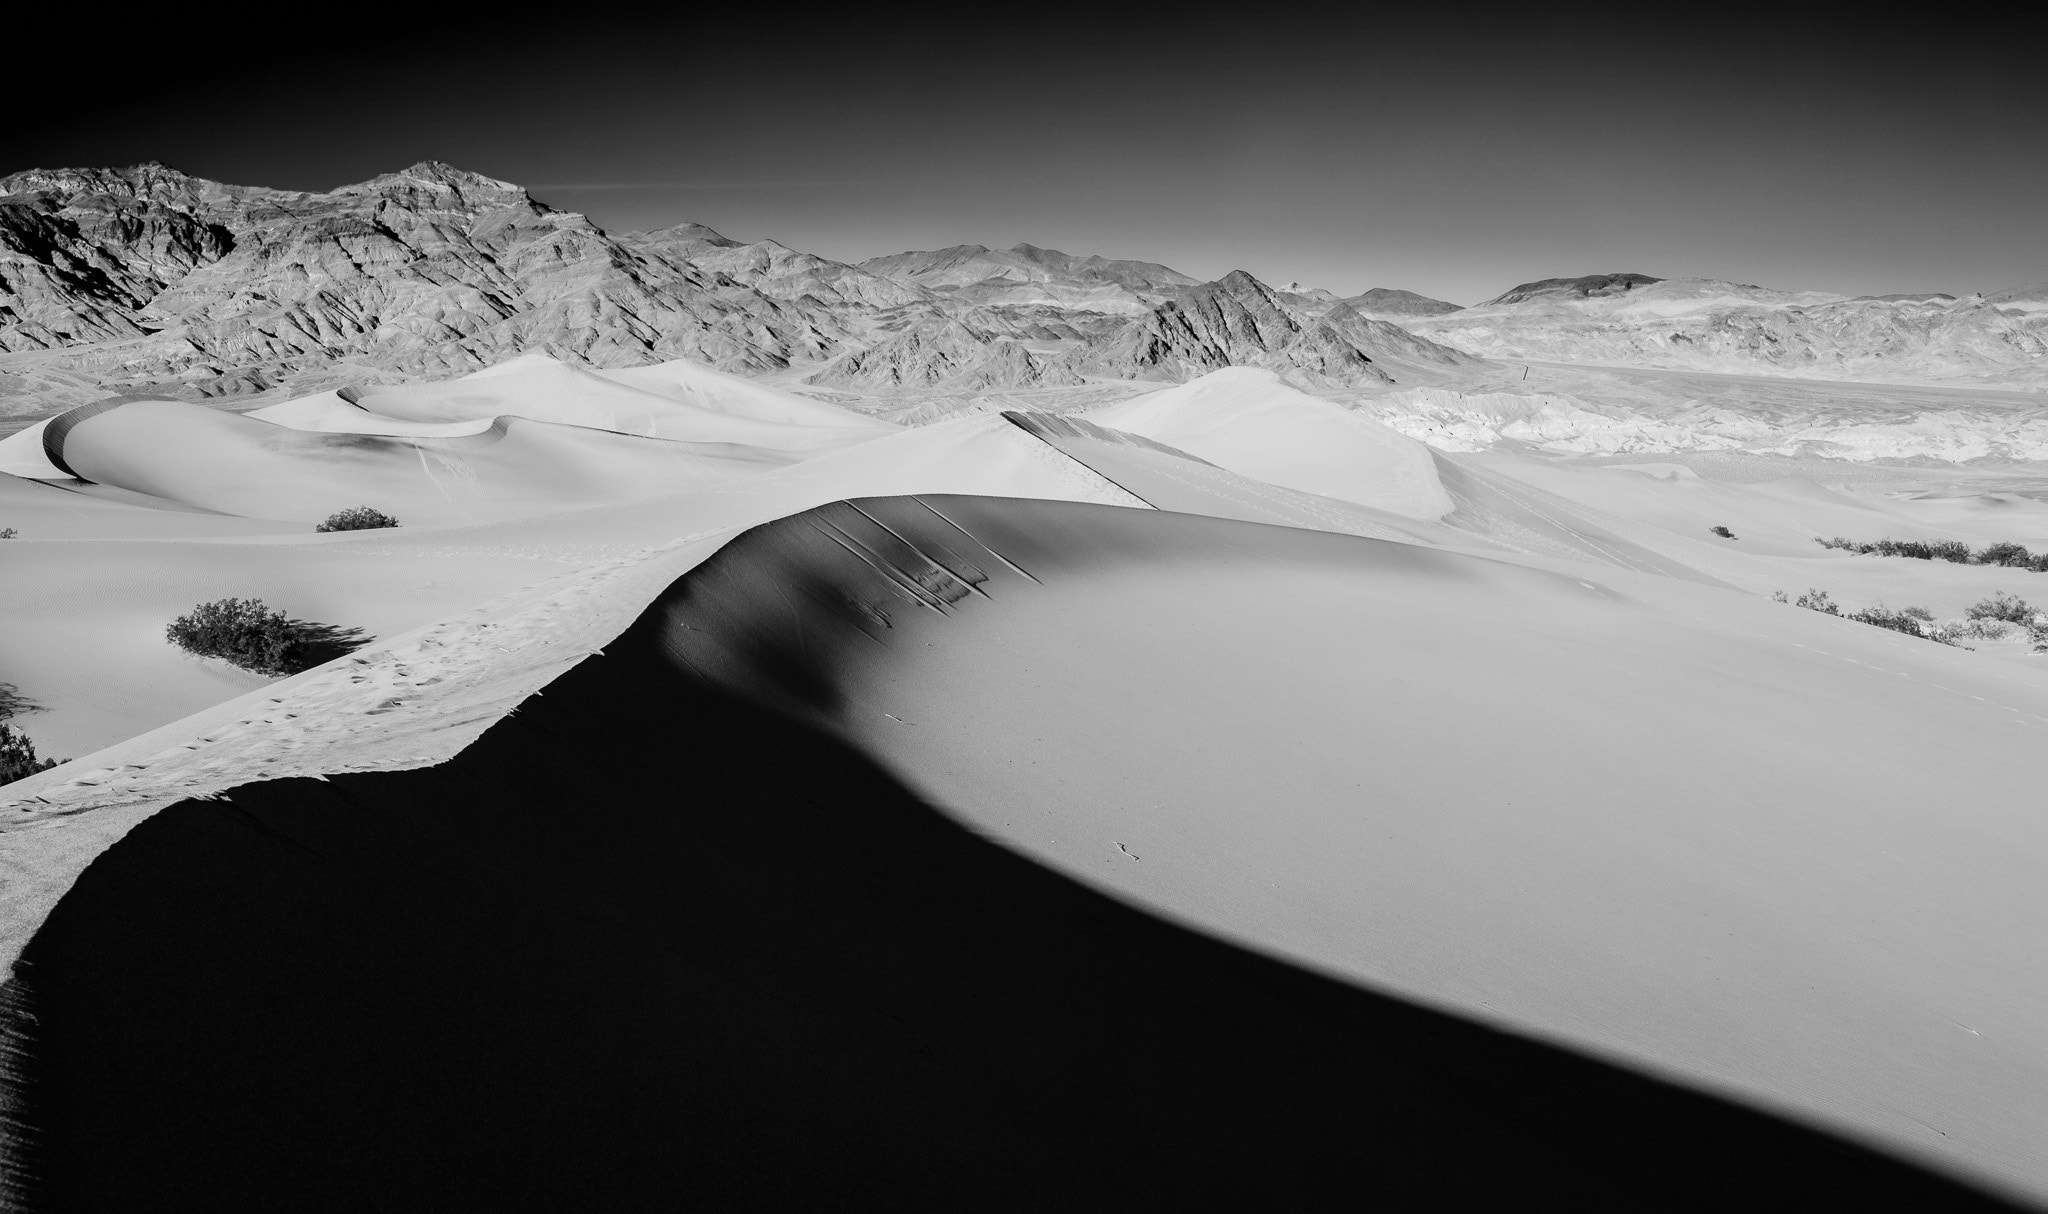 Photograph Dunes by Ingo Meckmann on 500px